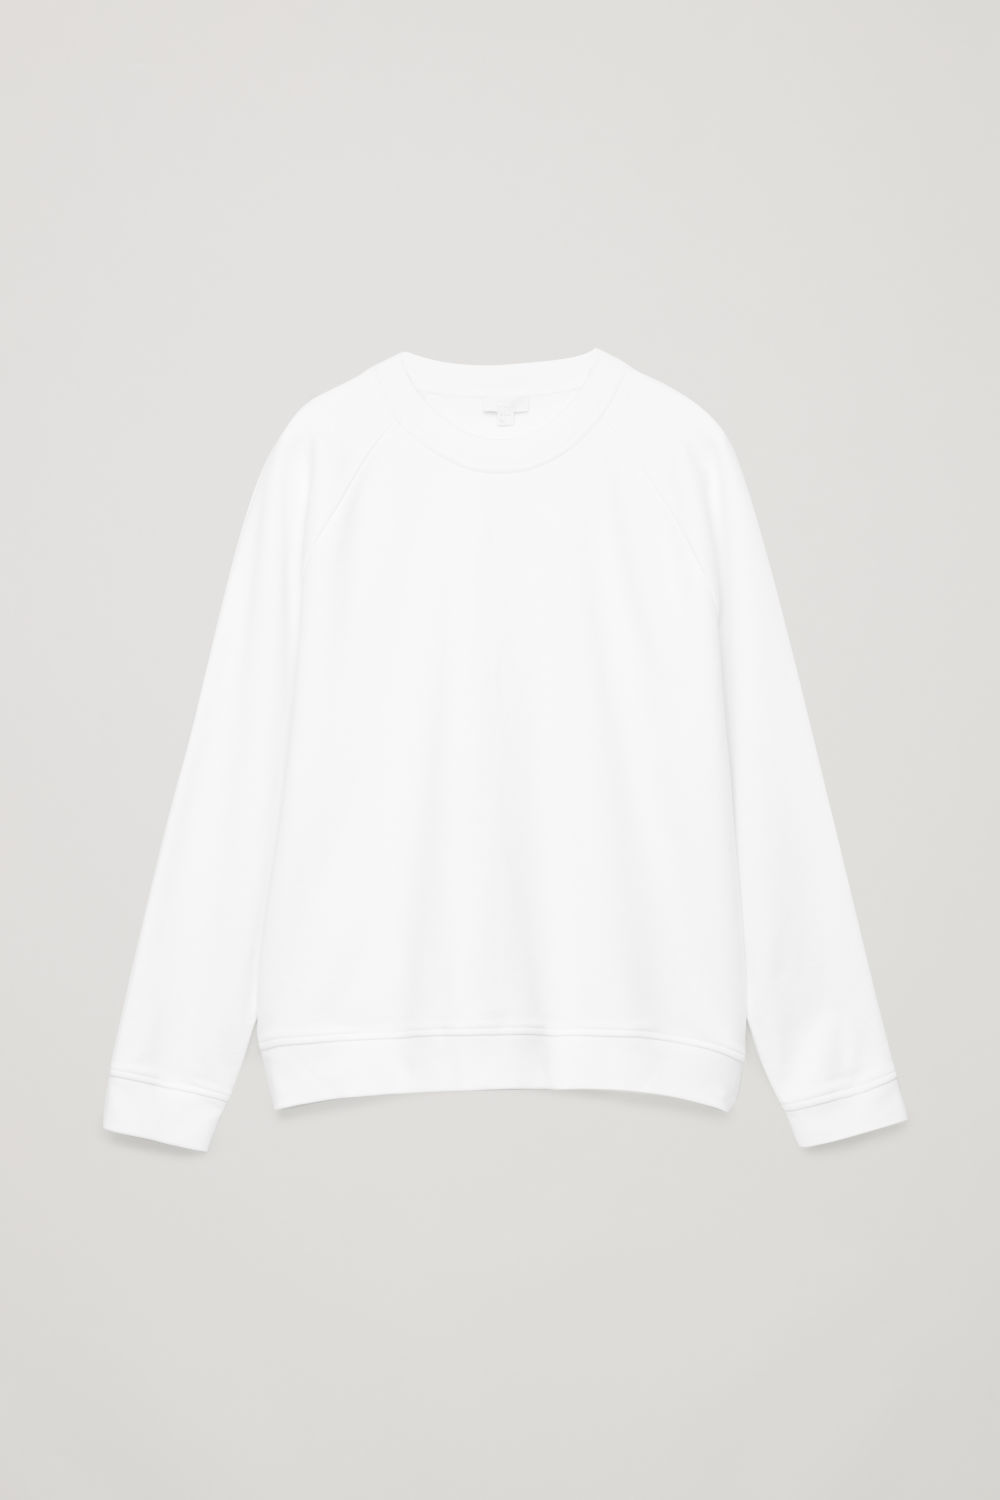 RAGLAN-SLEEVED SWEATSHIRT